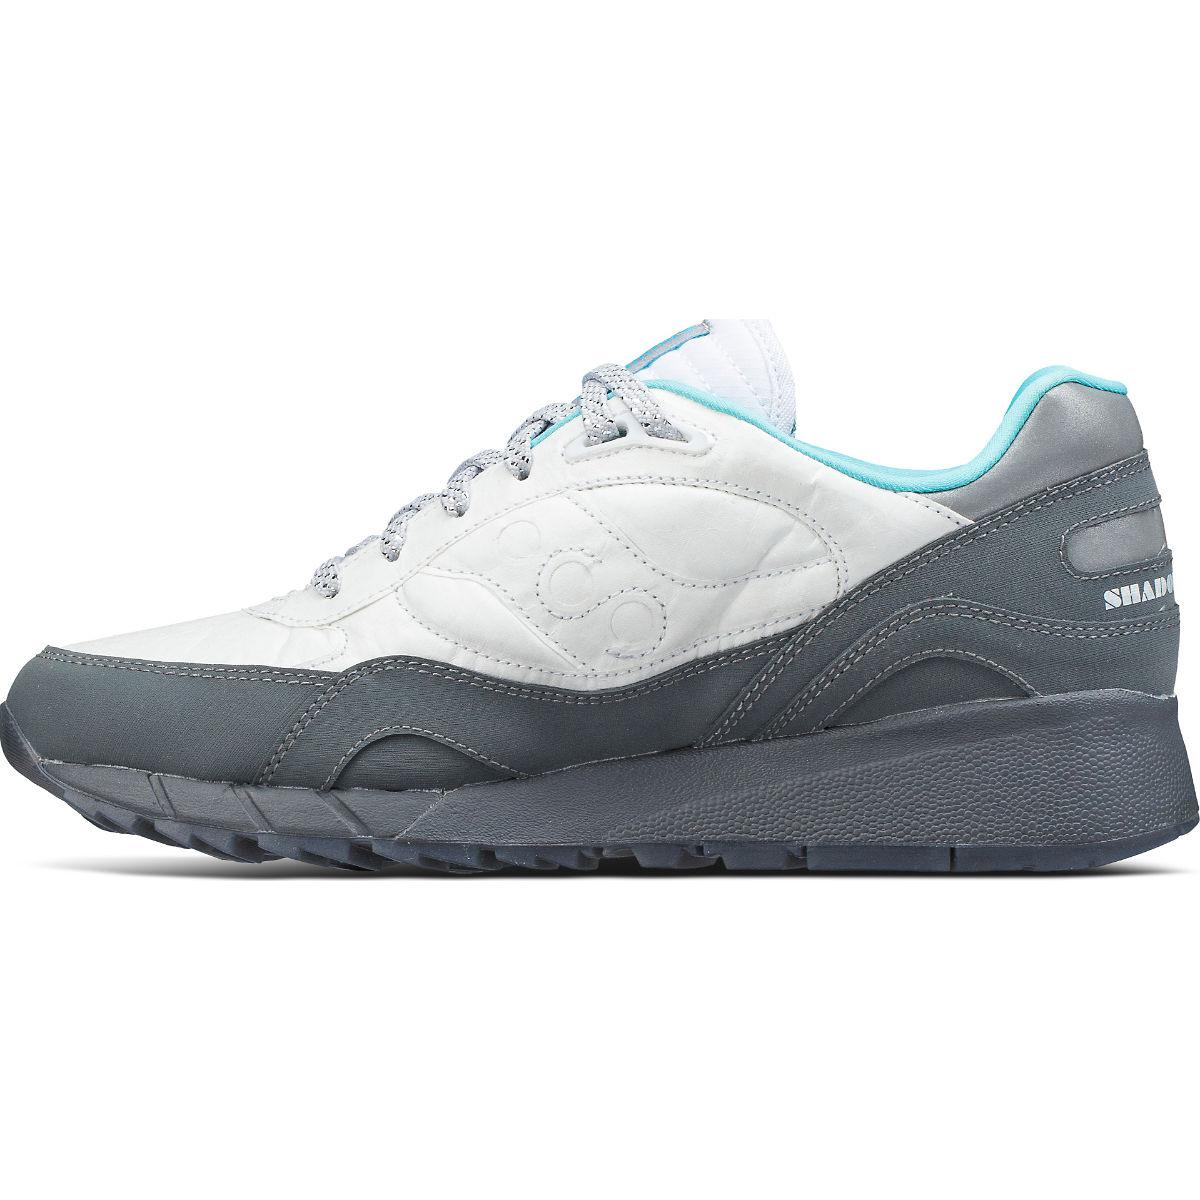 san francisco 5f5ae 0eee1 Saucony White Shadow 6000 Md Space for men